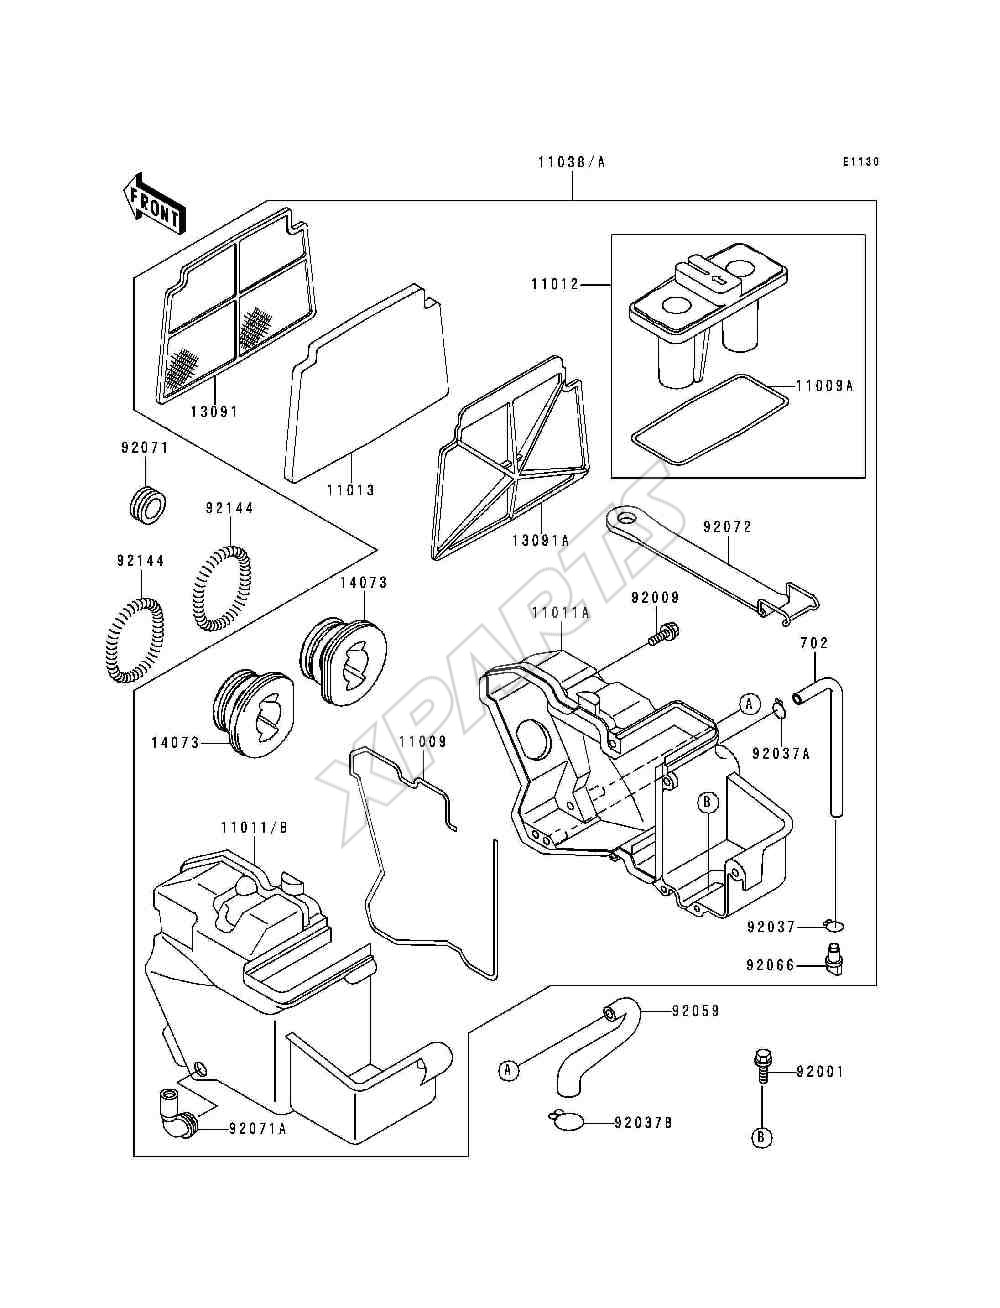 1993 Ninja 250r Ex250 F7 Wiring Diagram Picture For Category Air Cleaner